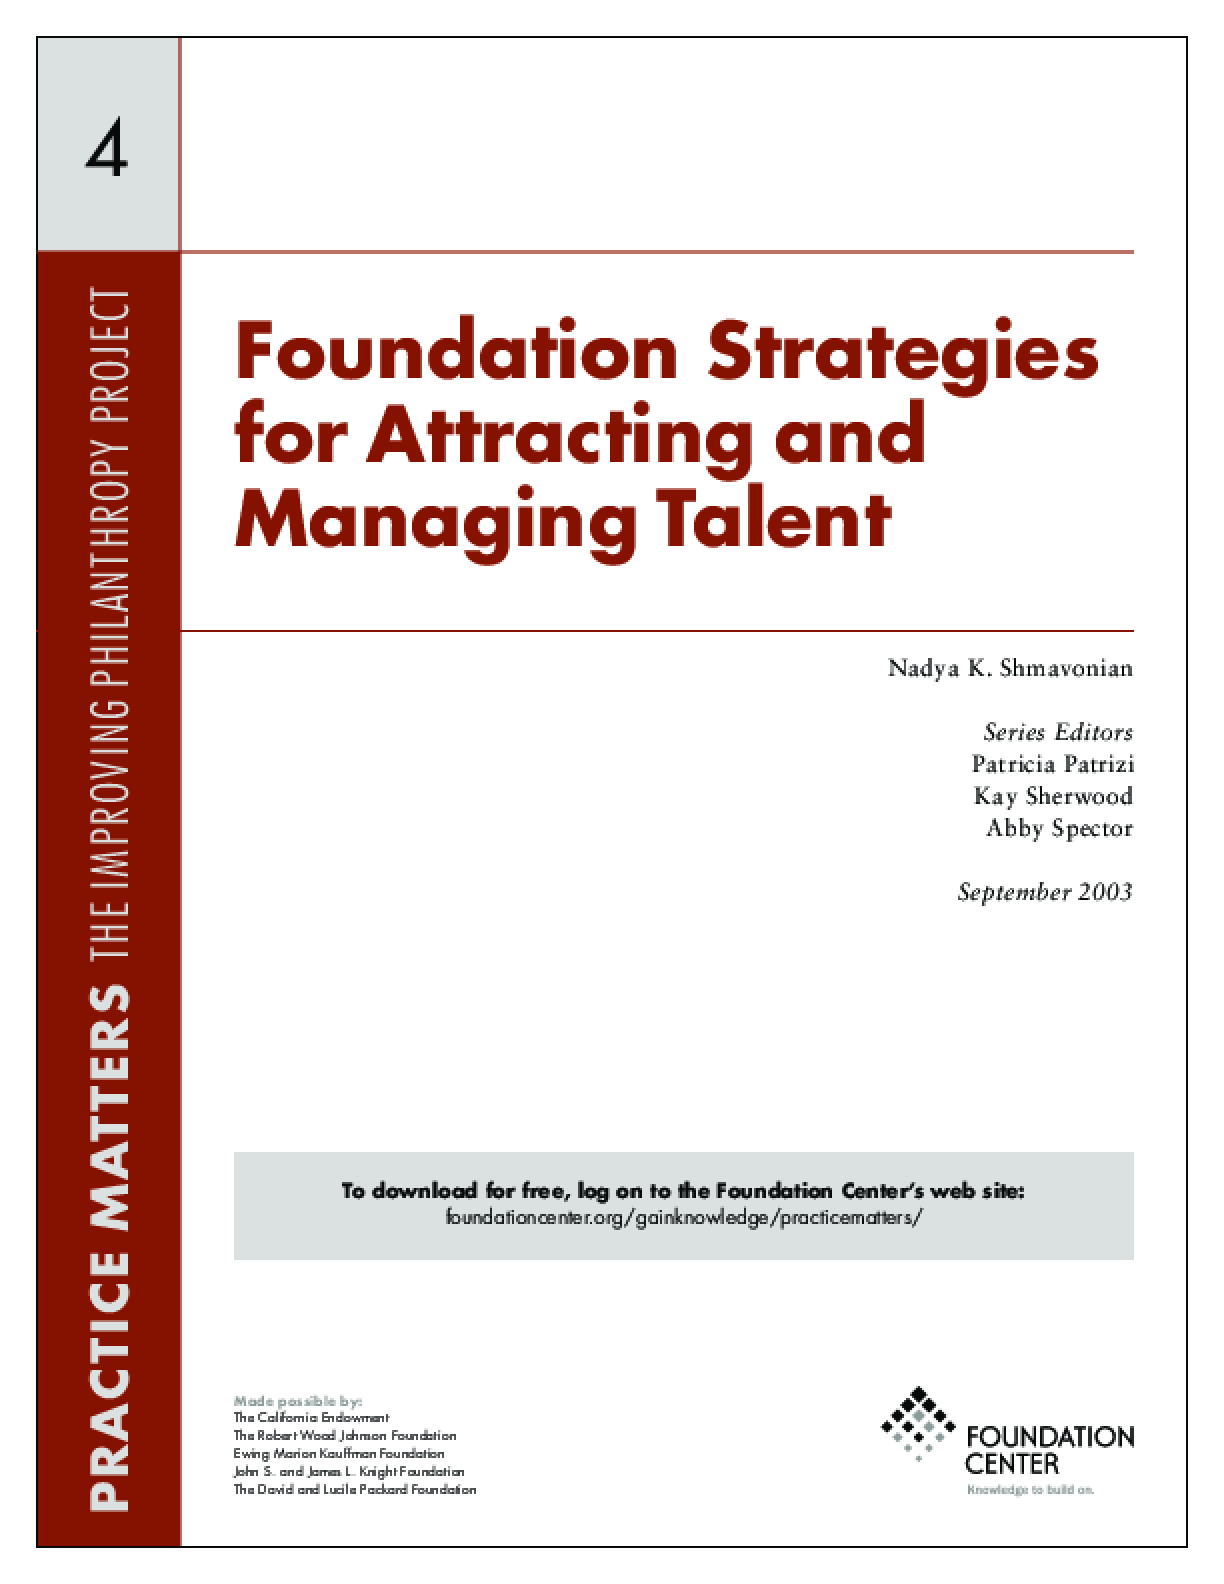 Foundation Strategies for Attracting and Managing Talent - Executive Summary